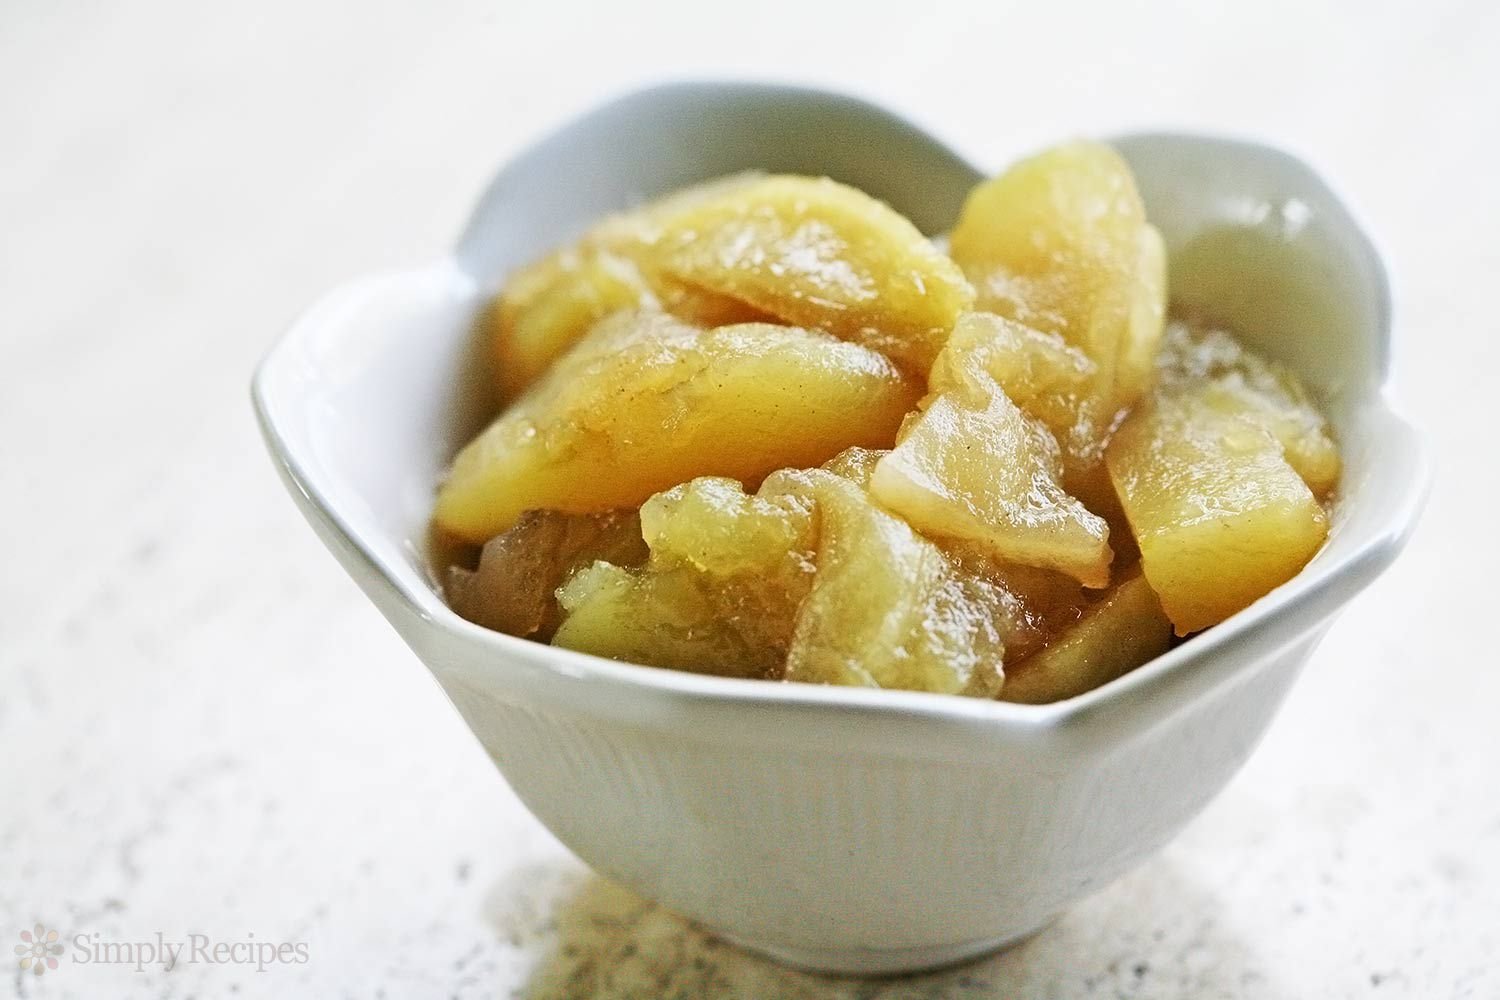 Easy Baked Apple Slices Recipe